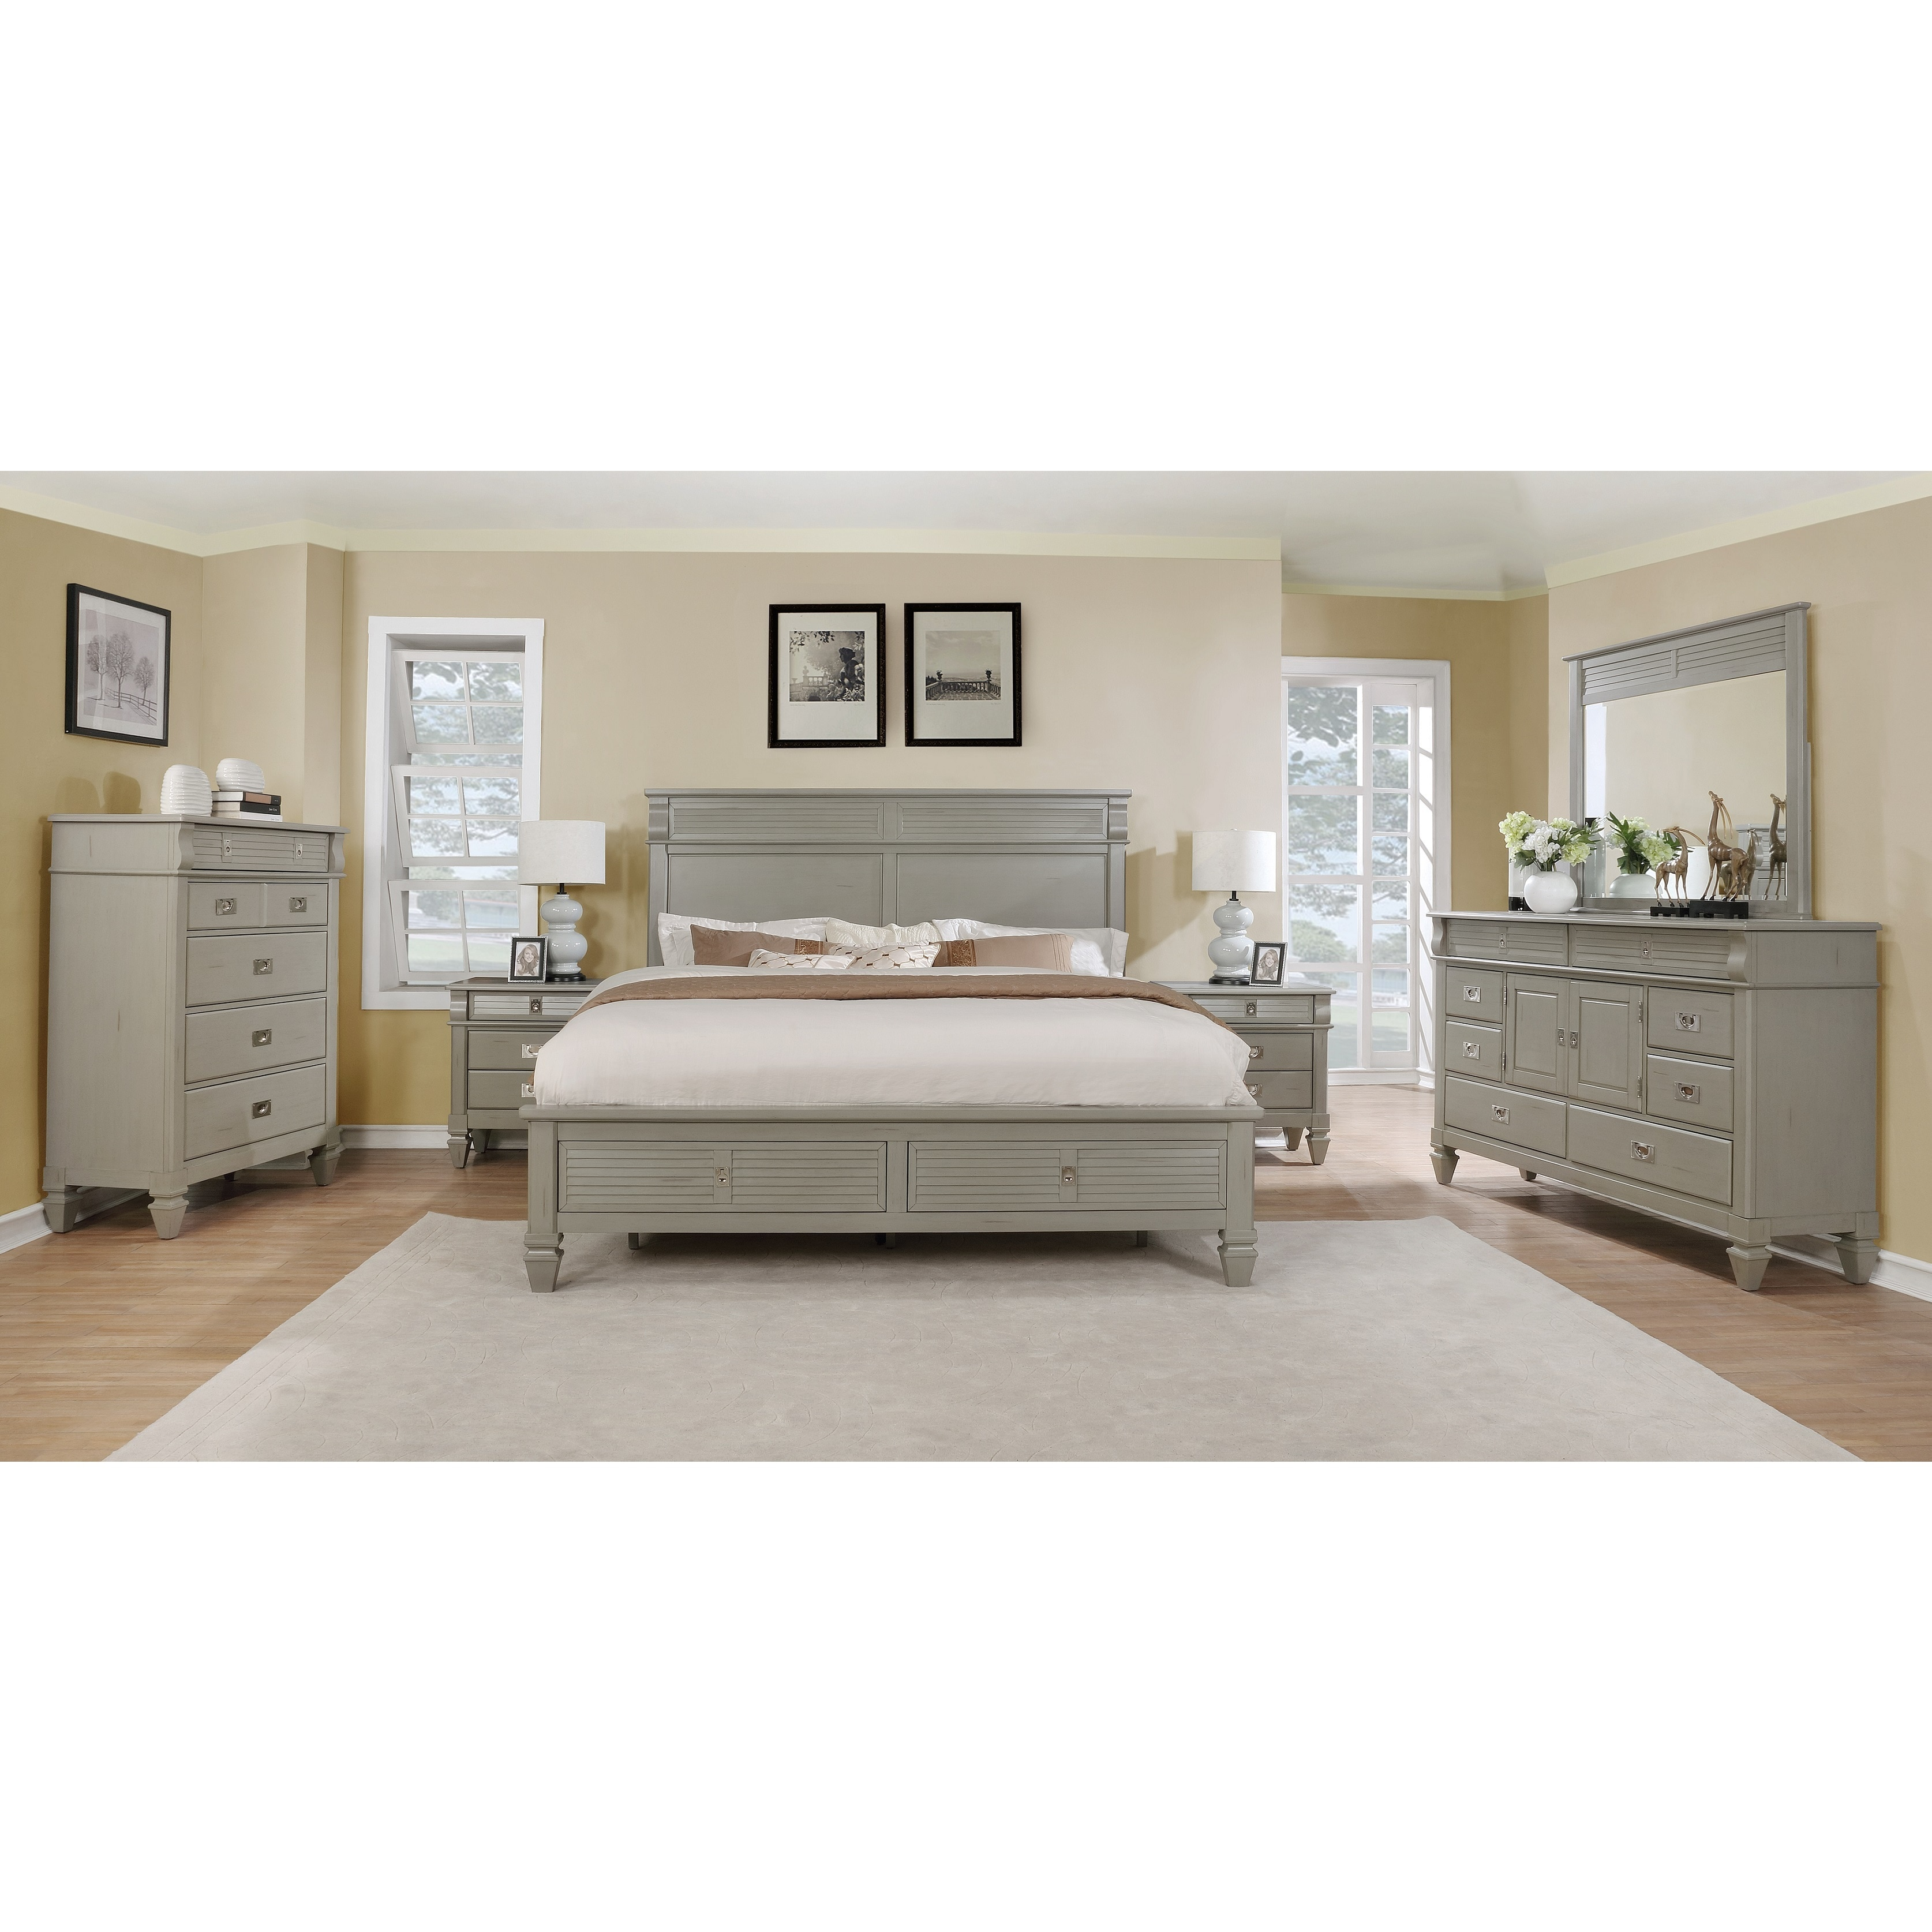 York 204 Solid Wood Construction Bedroom Set With King Size Bed Dresser Mirror Chest And 2 Night Stands Free Shipping On Orders Over 45